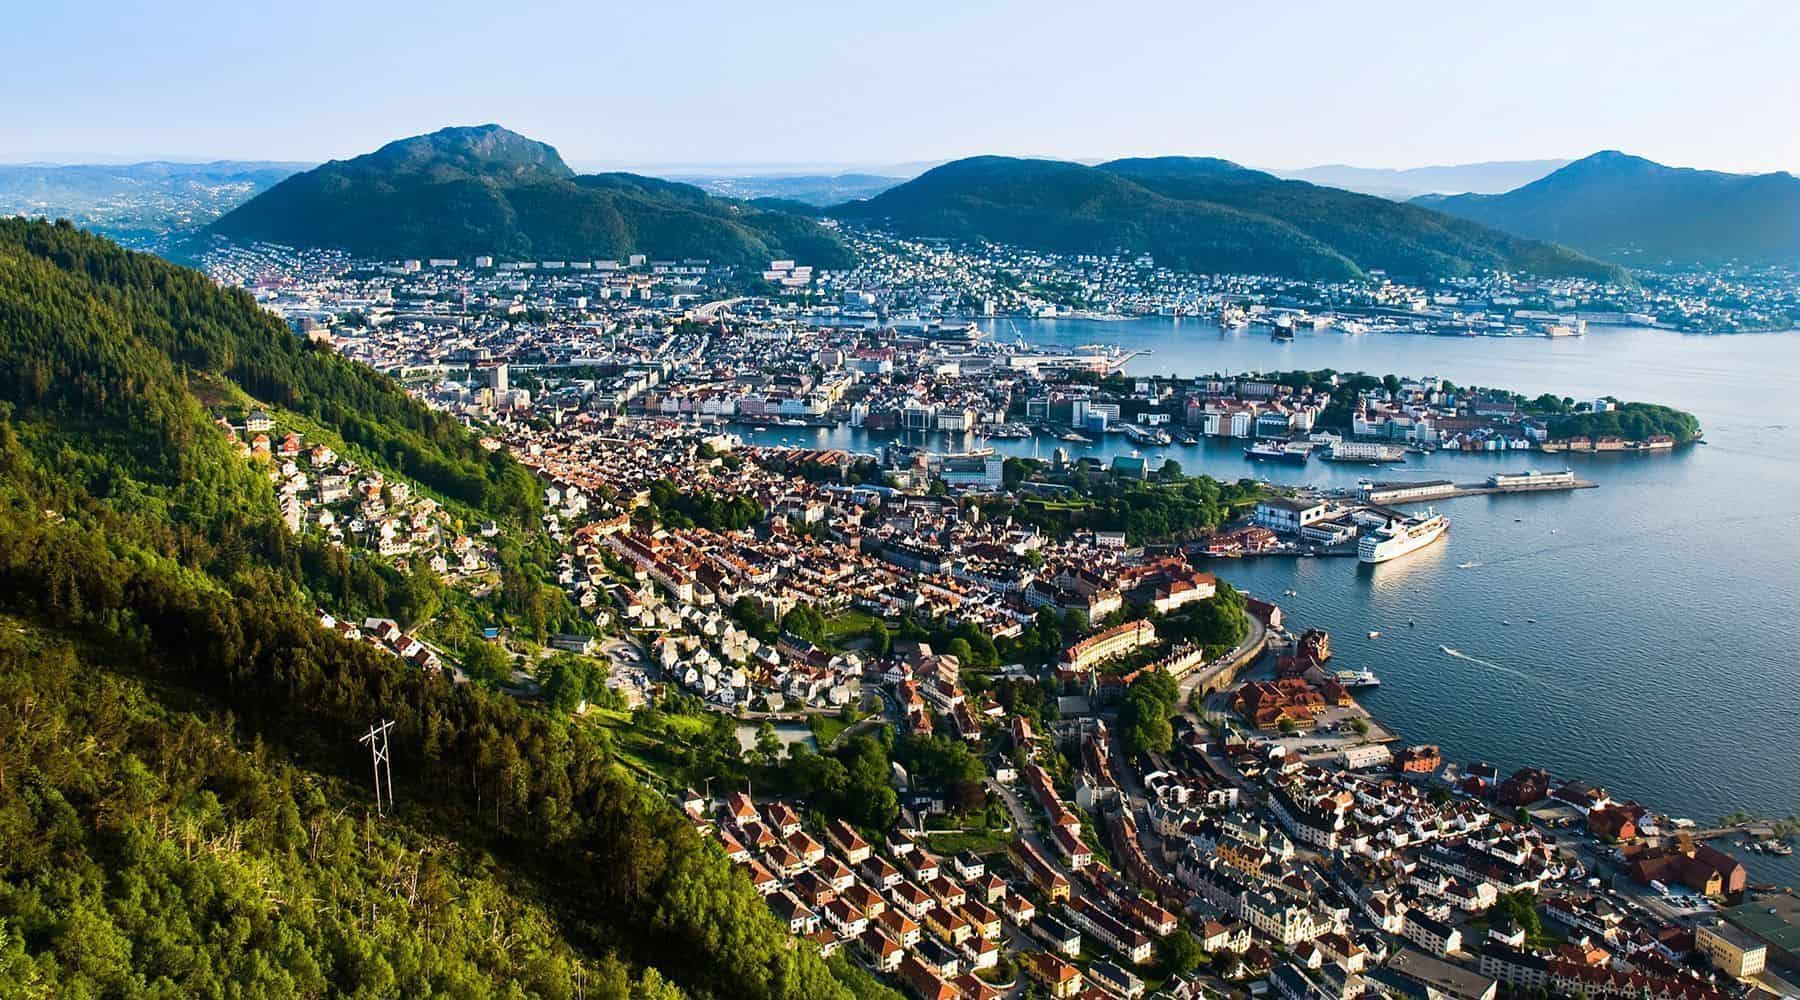 Bergen seen from above